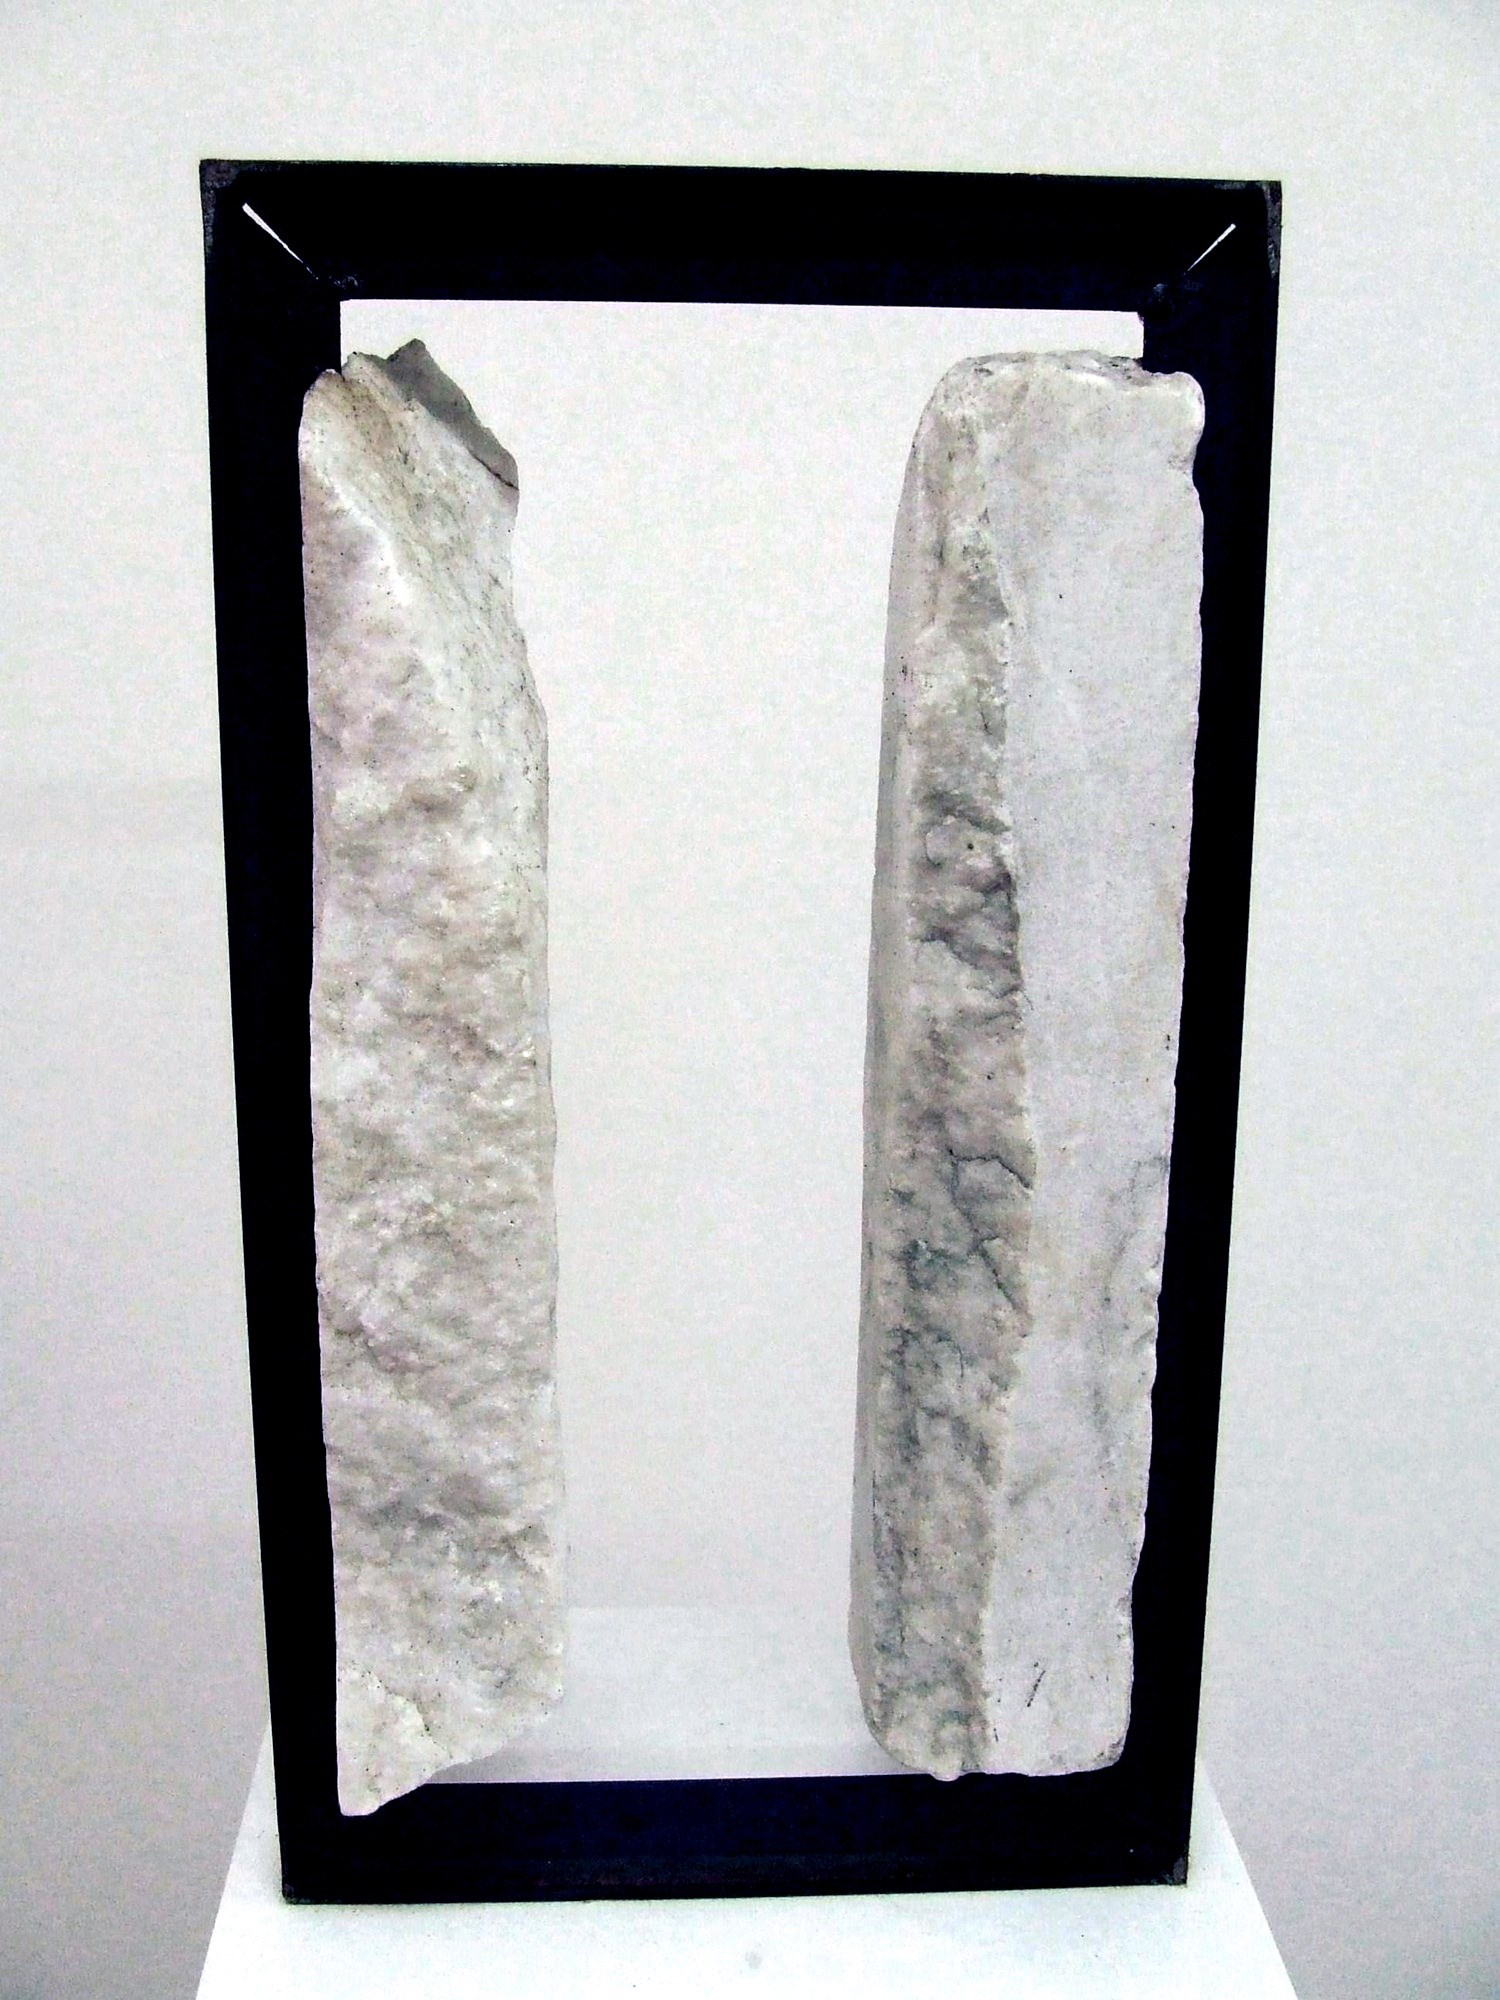 Ecótono 6.1, original Abstract Marble Sculpture by Ana Almeida Pinto